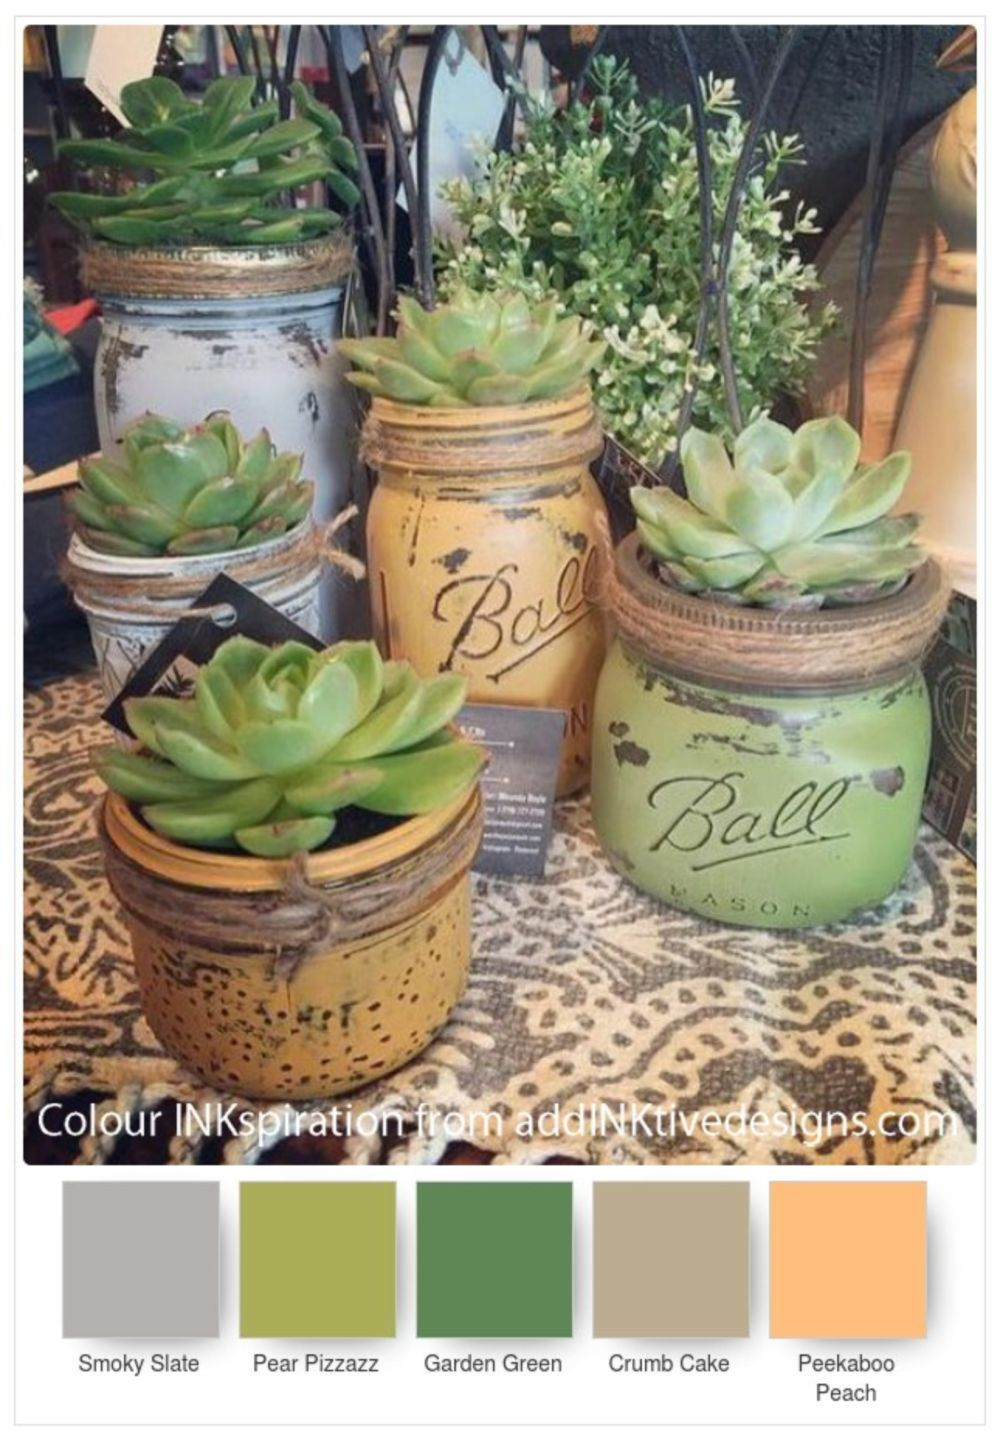 Cool 30 Incredibly Amazing DIY Succulents Project Ideas  https://cooarchitecture.com/